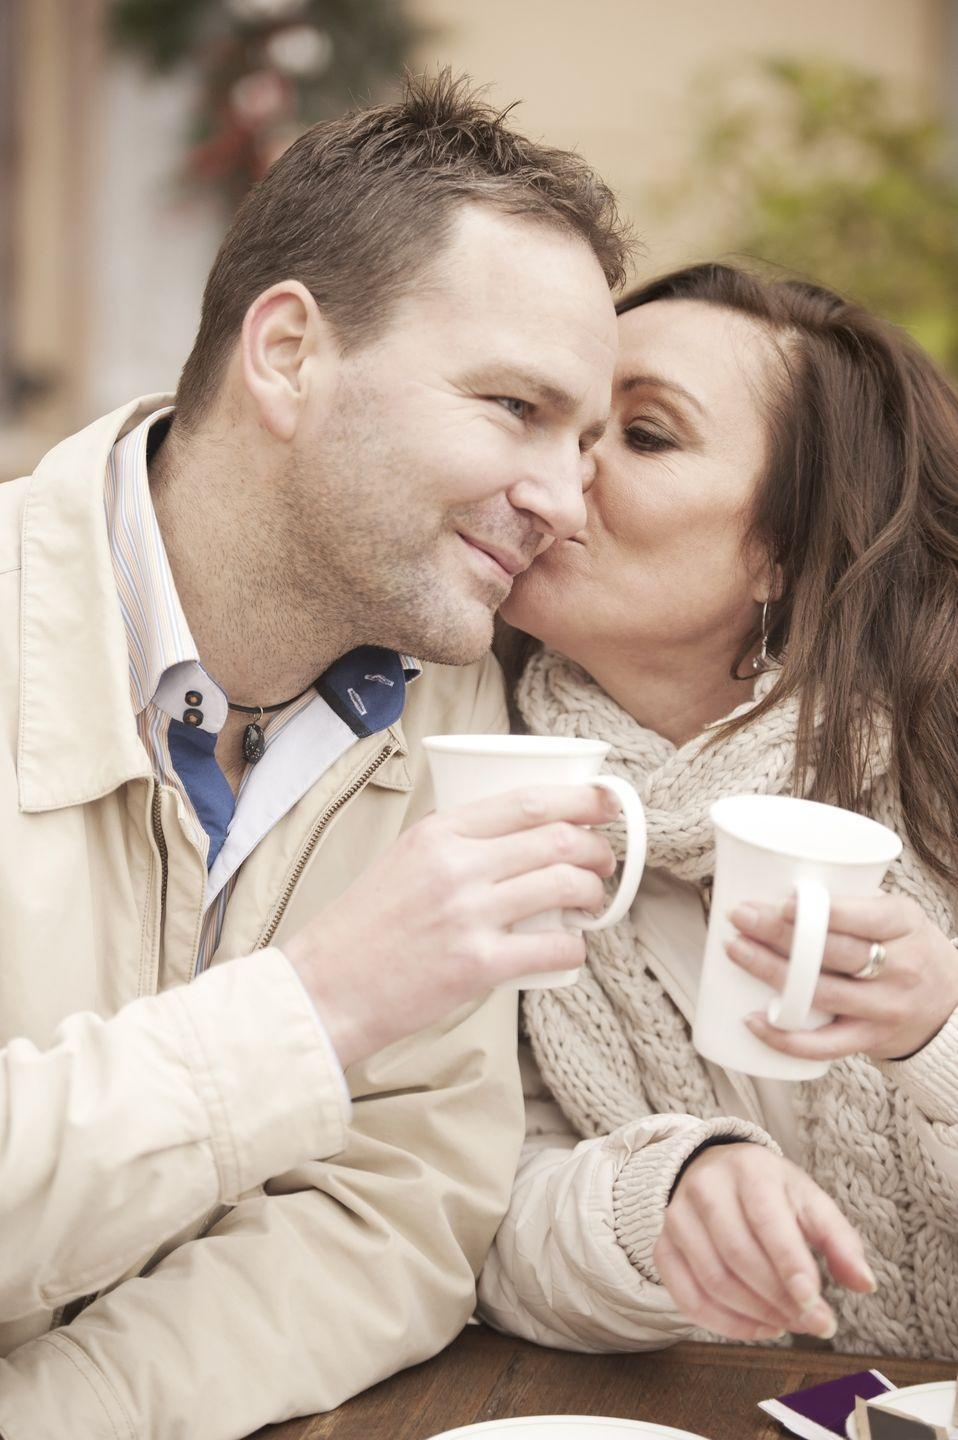 "<p>Here's an opportunity to go all out: recreate your first date — at home. If you went to a coffee shop, whip up some artisanal coffees. If you went to a <a href=""https://www.goodhousekeeping.com/food-products/g25894059/most-romantic-restaurants/"" rel=""nofollow noopener"" target=""_blank"" data-ylk=""slk:romantic restaurant"" class=""link rapid-noclick-resp"">romantic restaurant</a>, print the menu and try to make one of the dishes in your kitchen. If you went to the zoo, print pictures of the animals you saw and put them in frames around the living room. Get creative and remember to tell your partner everything you loved about them on that very first day. </p><p><strong>RELATED:</strong> <a href=""https://www.goodhousekeeping.com/life/relationships/a31405192/cute-romantic-date-ideas/"" rel=""nofollow noopener"" target=""_blank"" data-ylk=""slk:100 Most Romantic Date Ideas Ever"" class=""link rapid-noclick-resp"">100 Most Romantic Date Ideas Ever</a></p>"